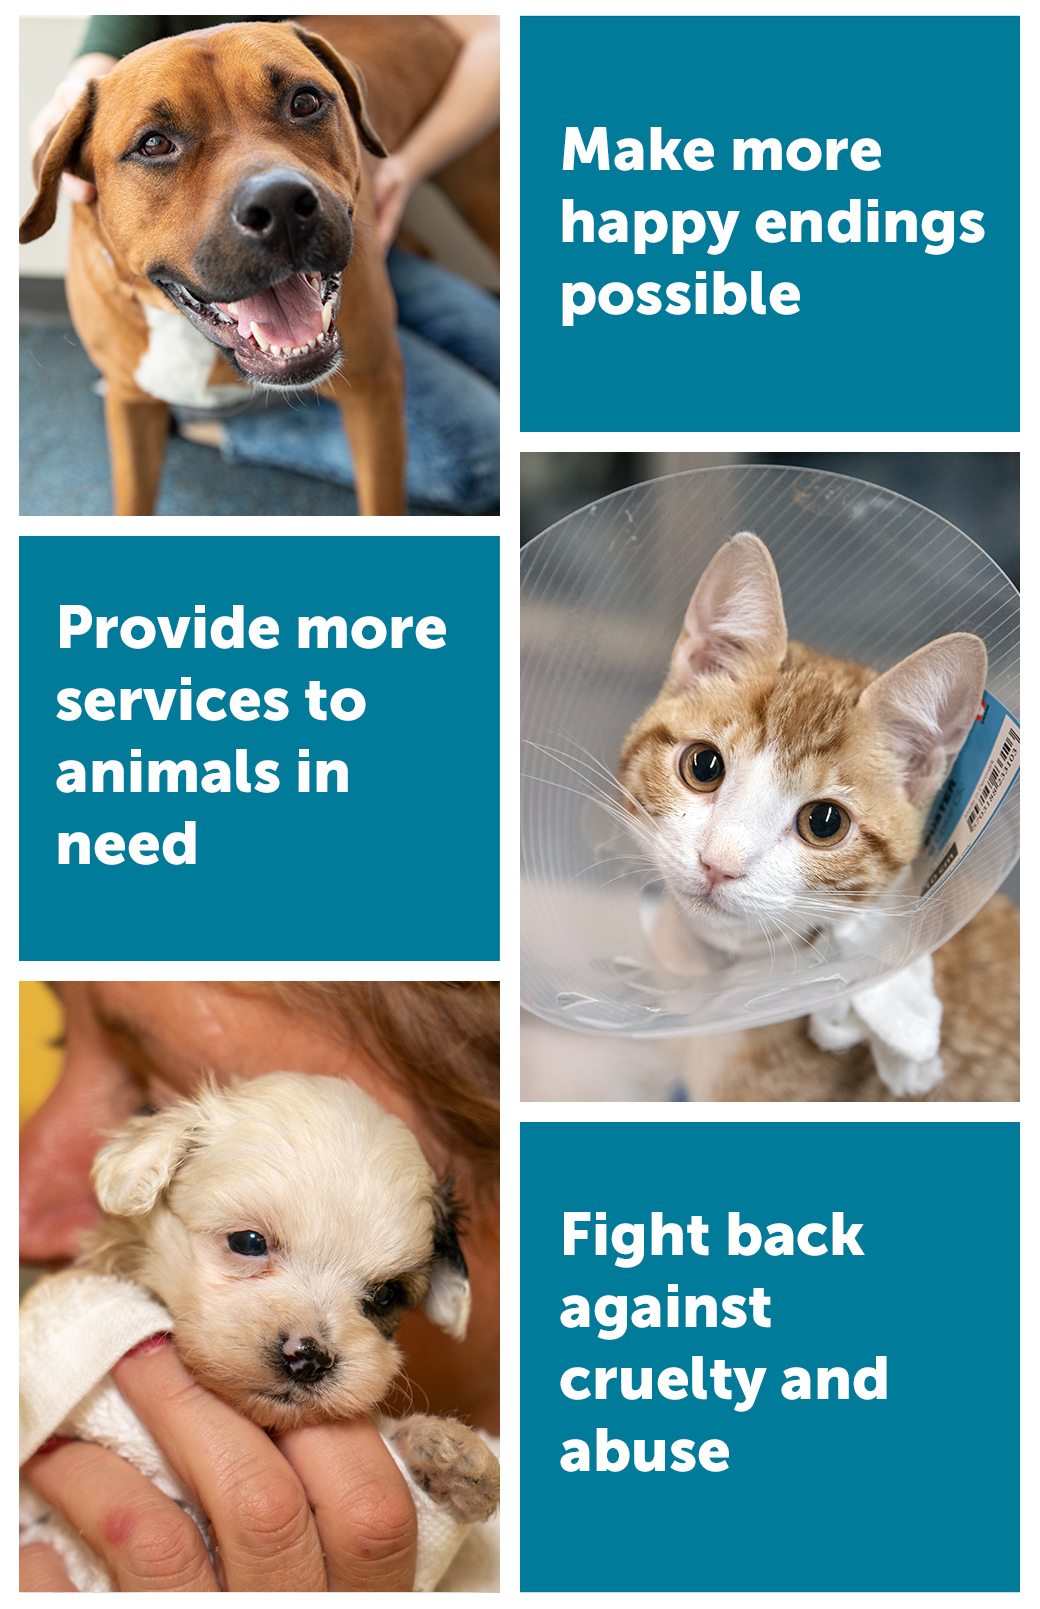 Make more happy endings possible, Provide more services to animals in need